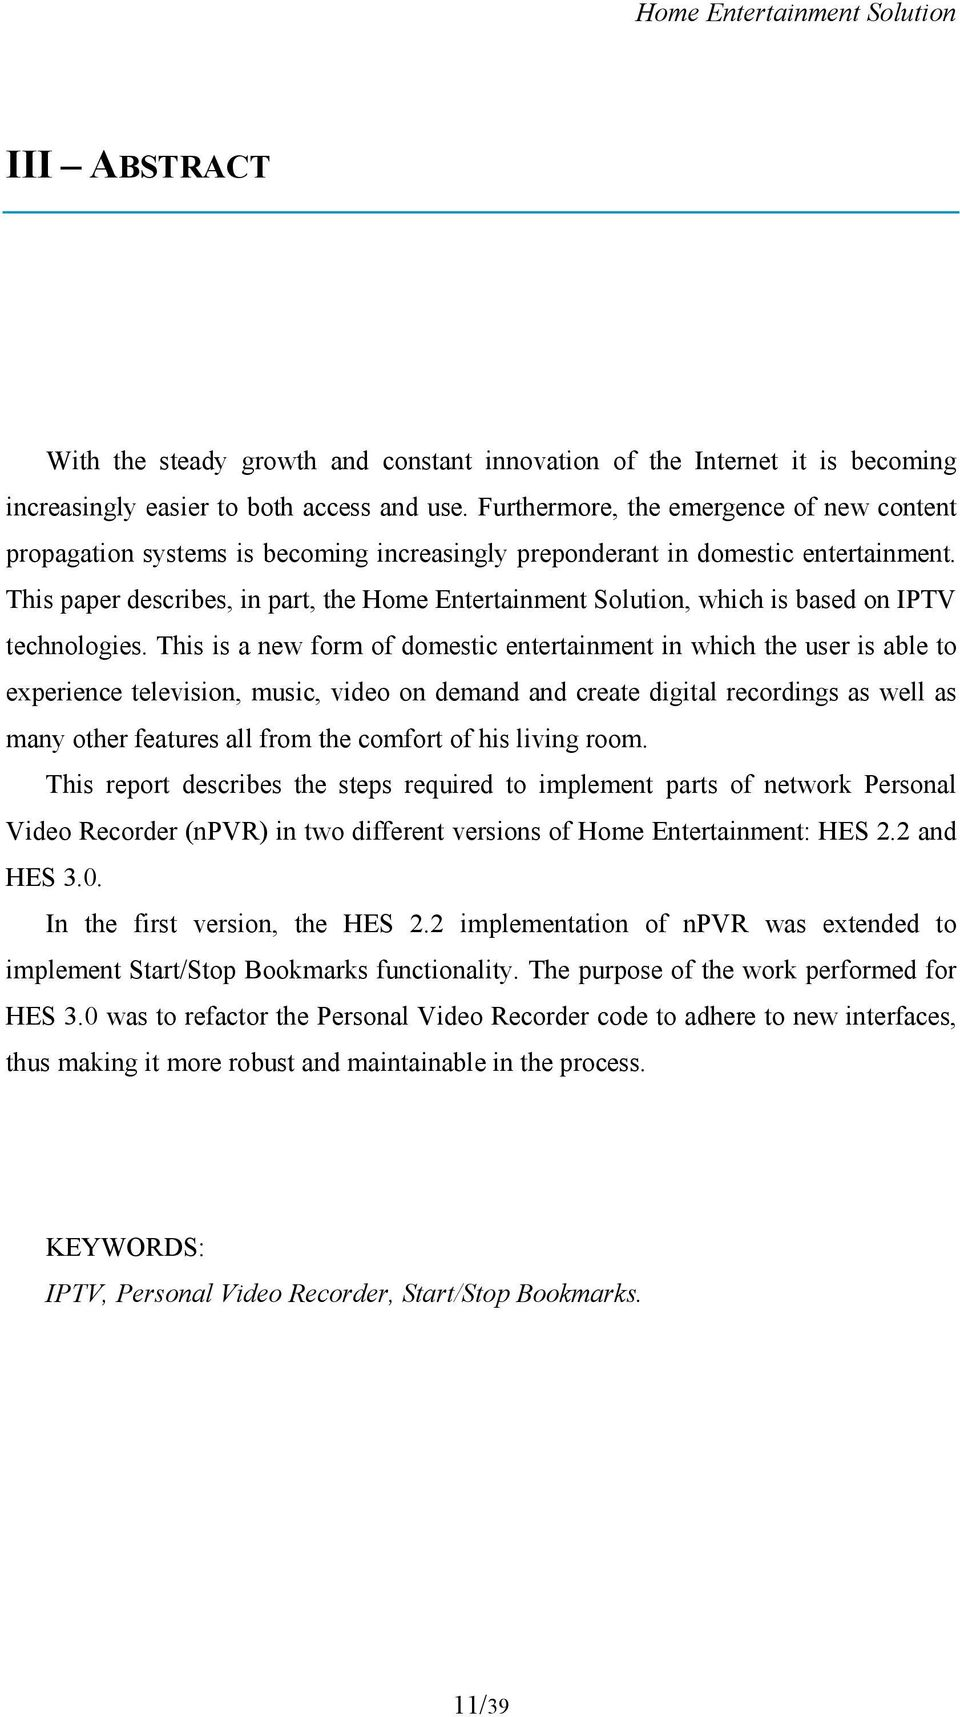 This paper describes, in part, the Home Entertainment Solution, which is based on IPTV technologies.